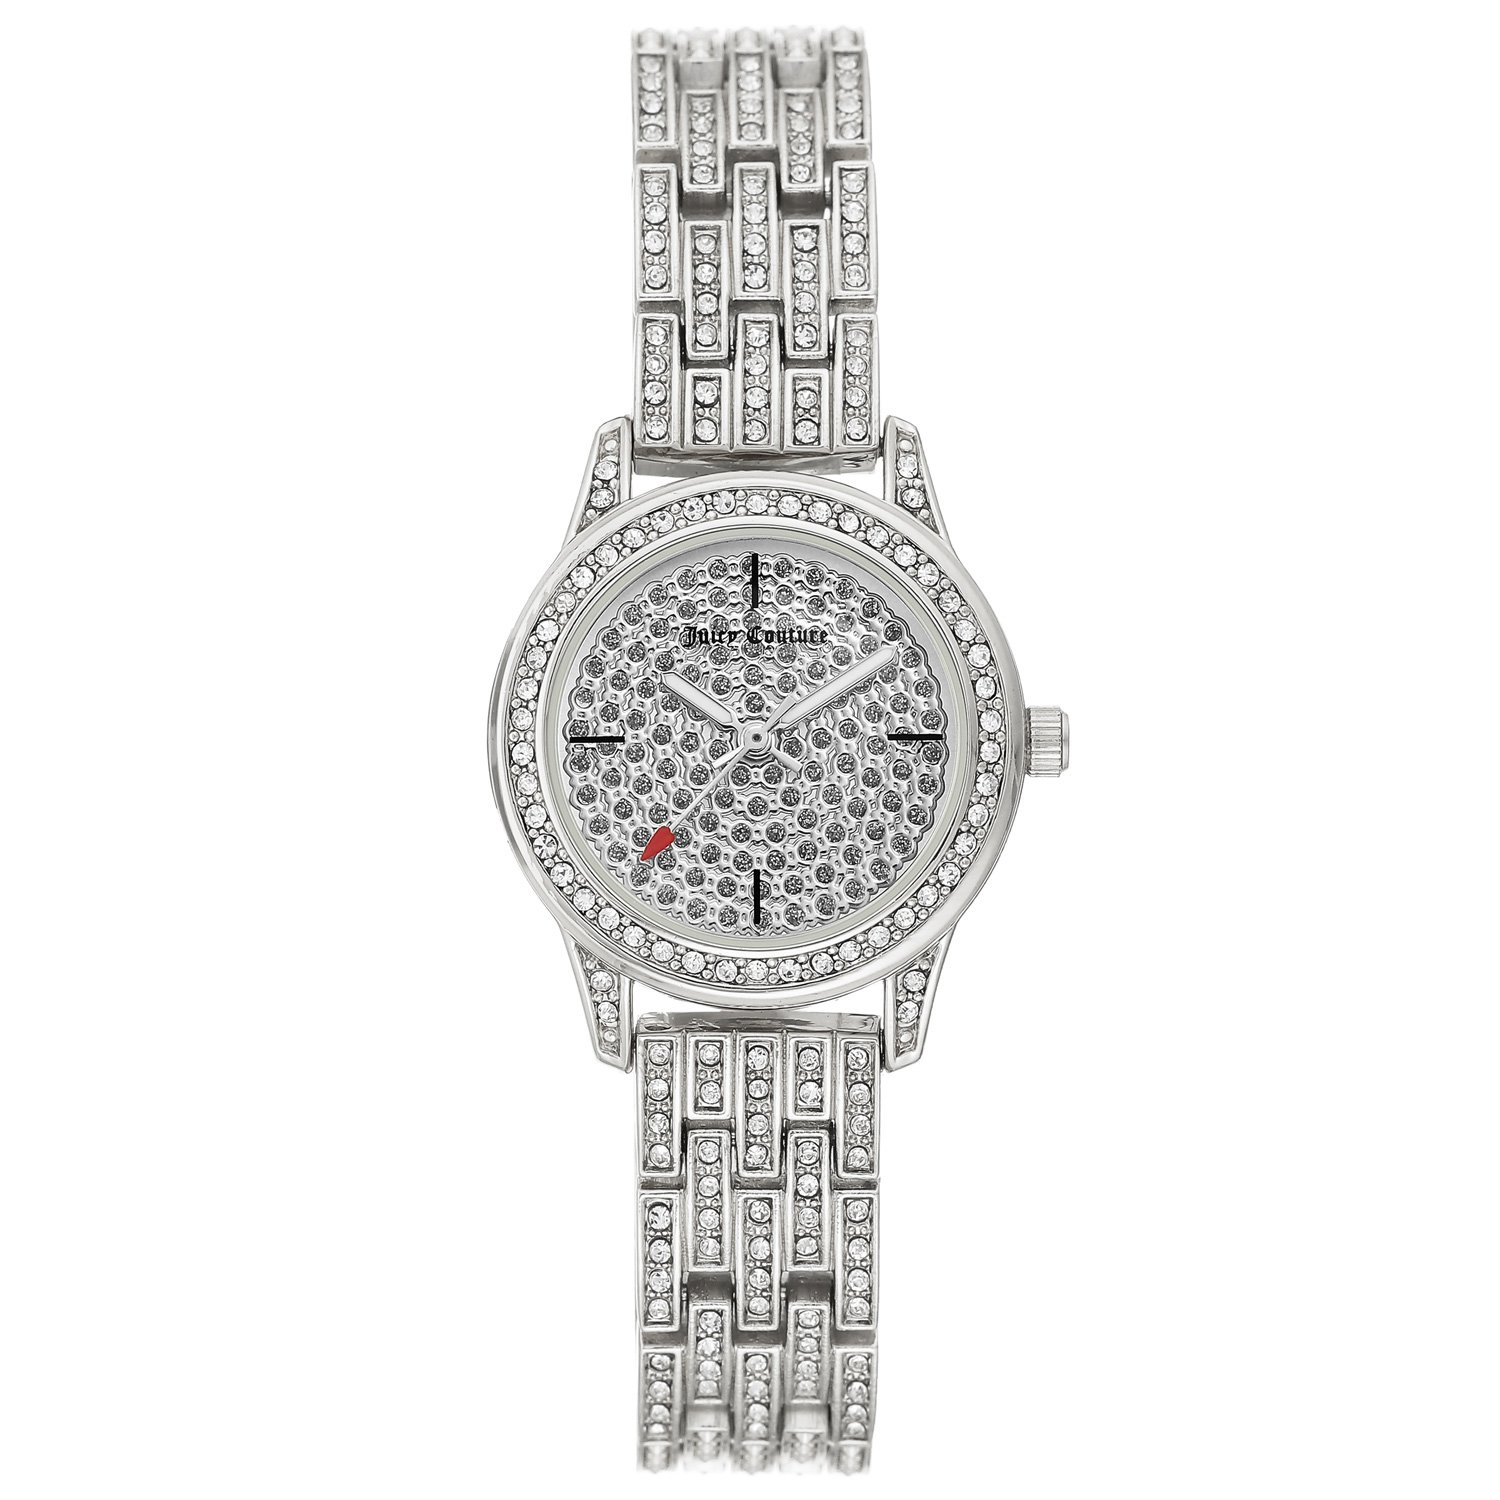 Juicy Couture Women's Watch Silver JC/1144PVSV